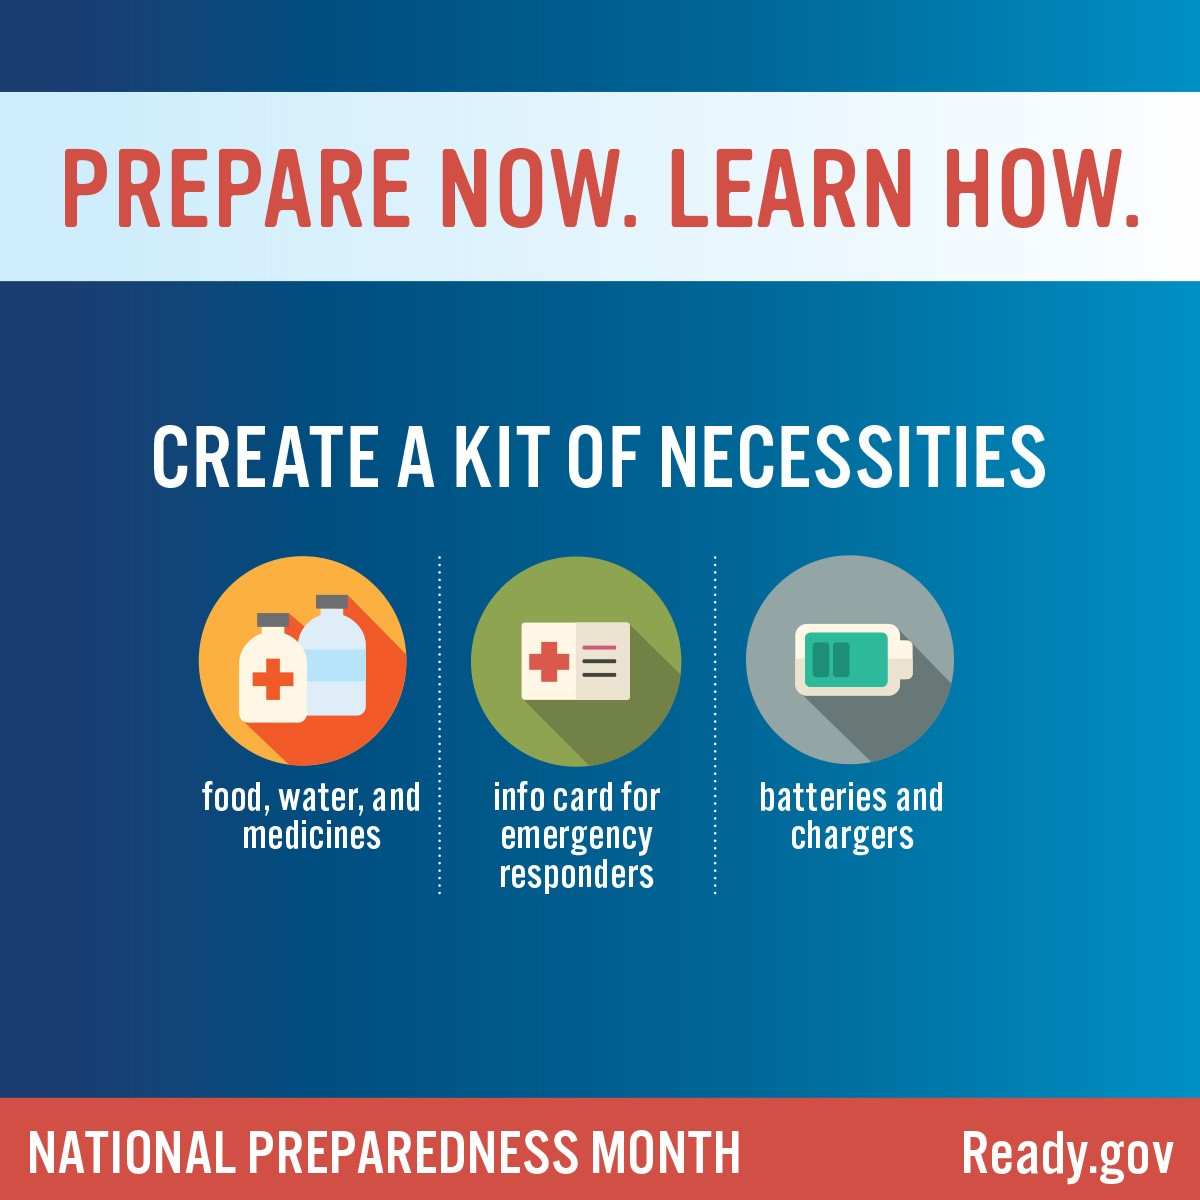 Create a kit of necessities: food, water, and medicines; info card for emergency responders; batteries and chargers